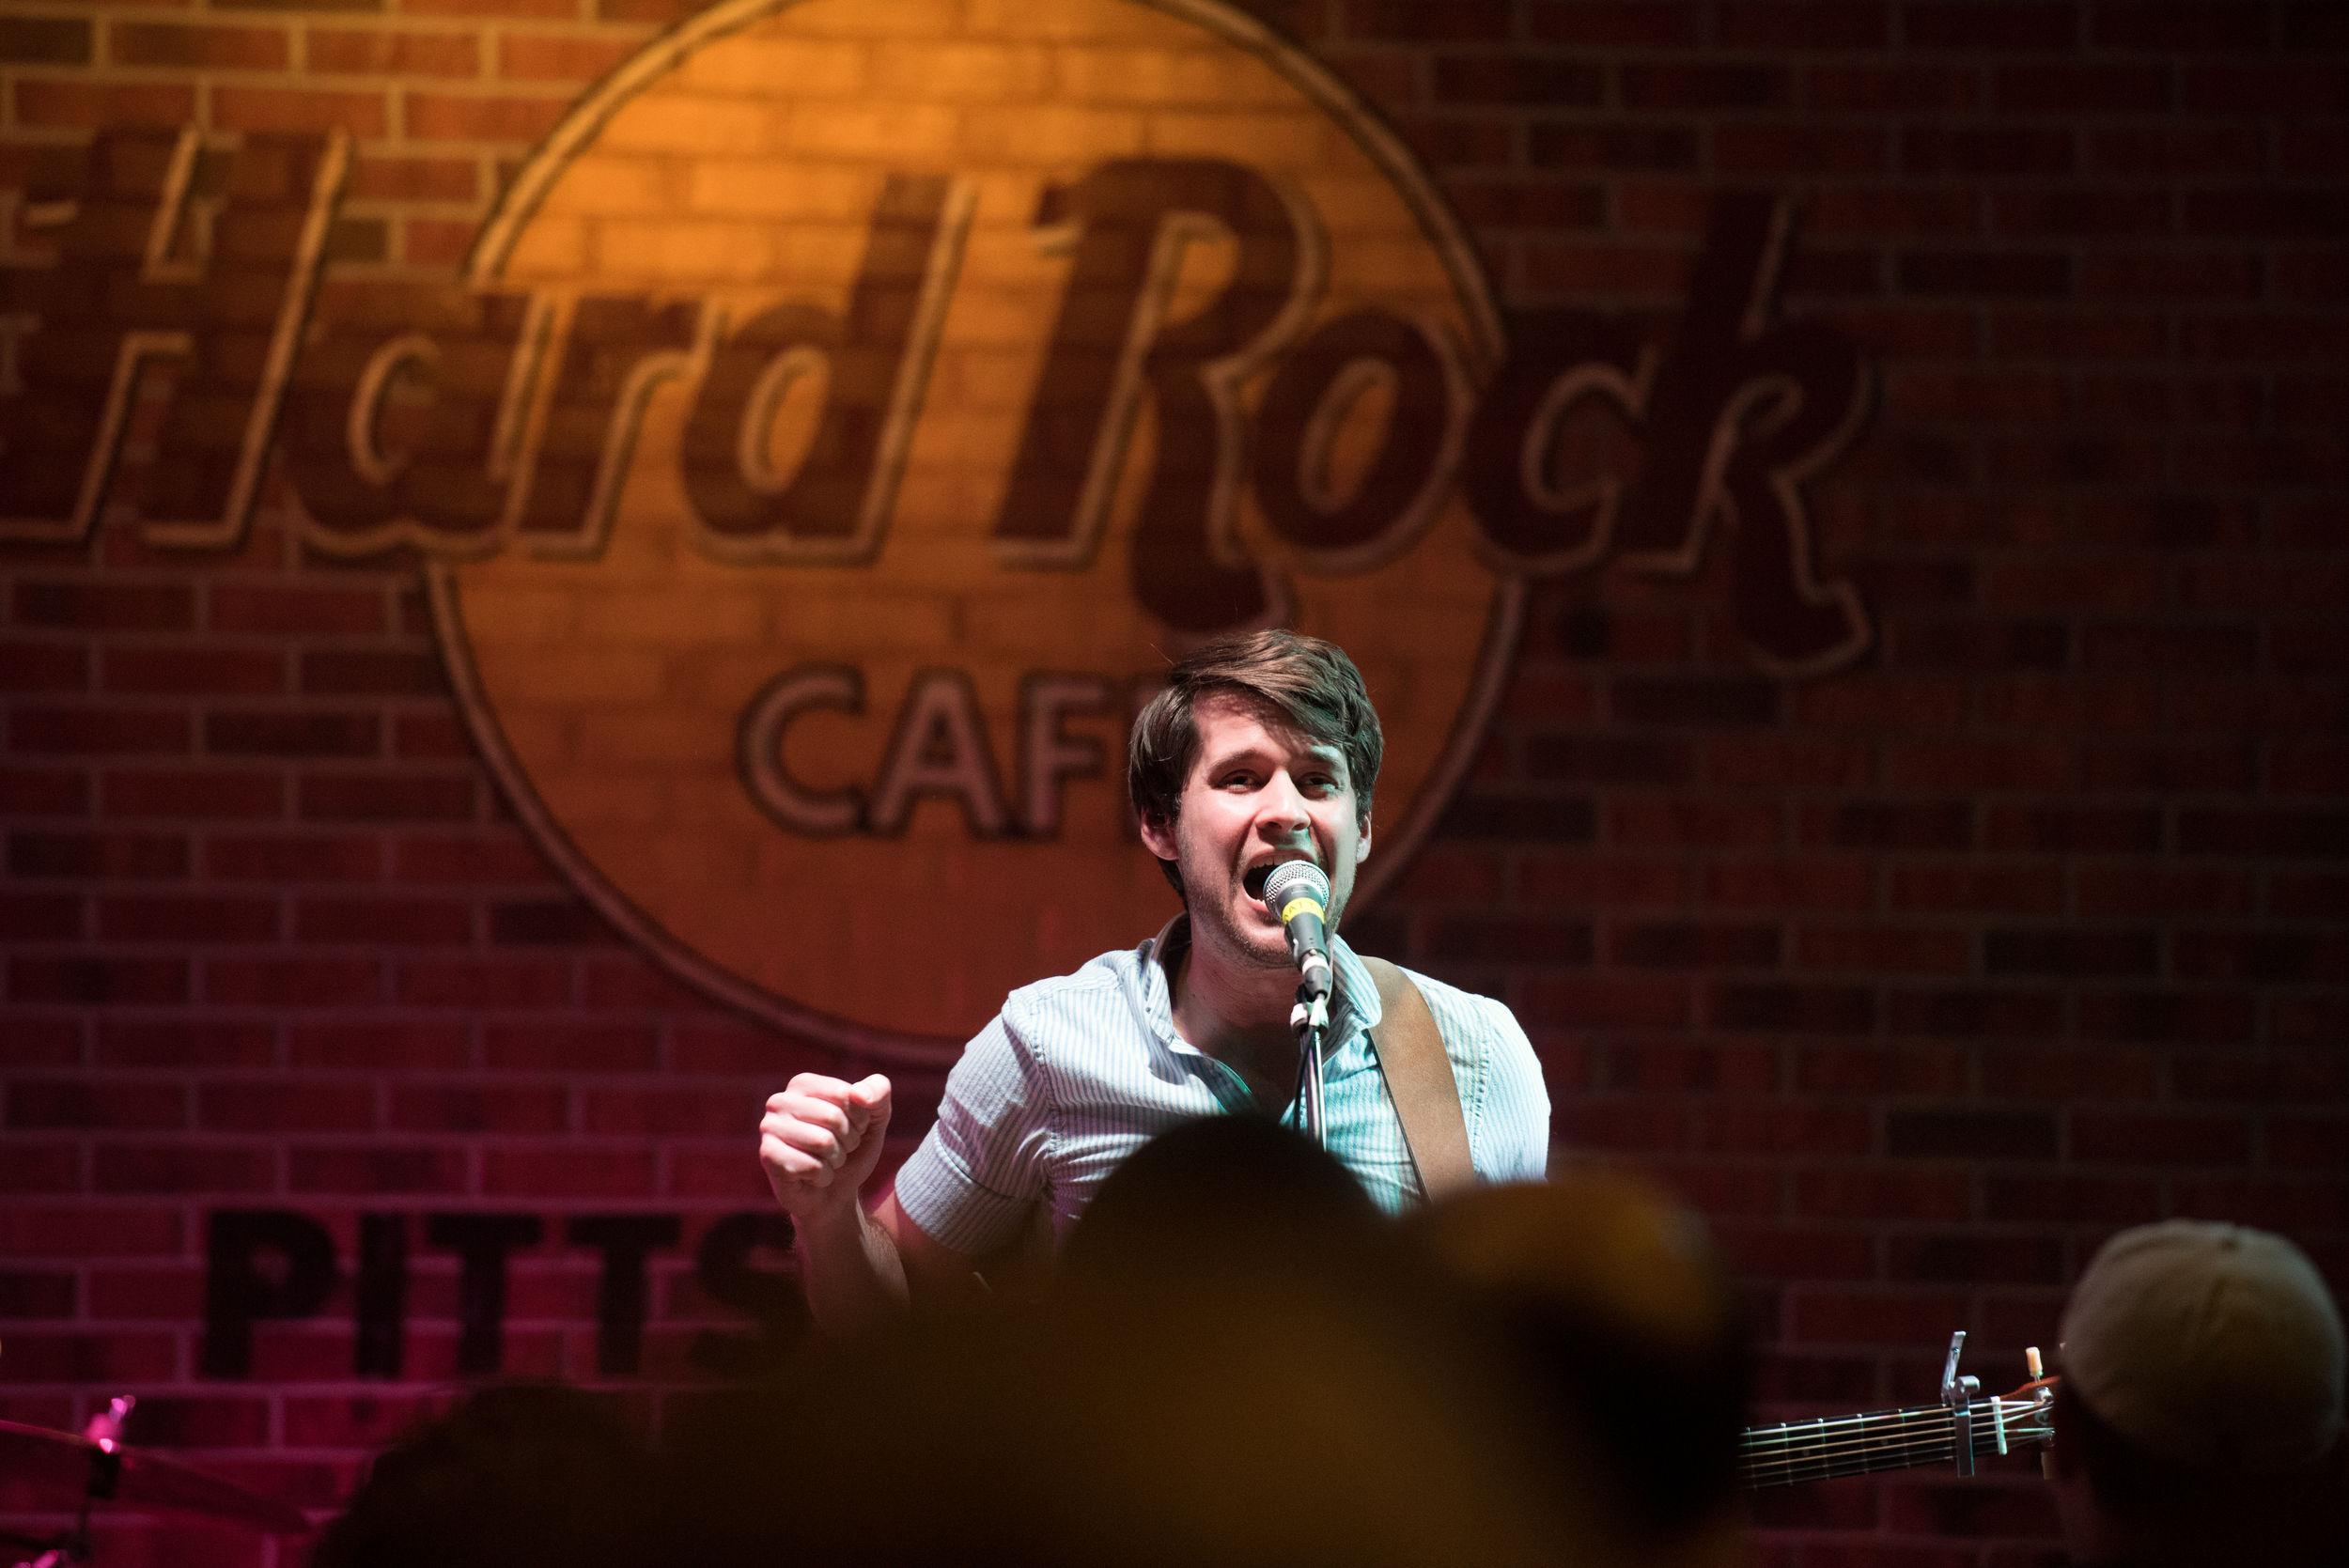 Cure Rock - Hard Rock Cafe - 3.26.15 - 229.jpg